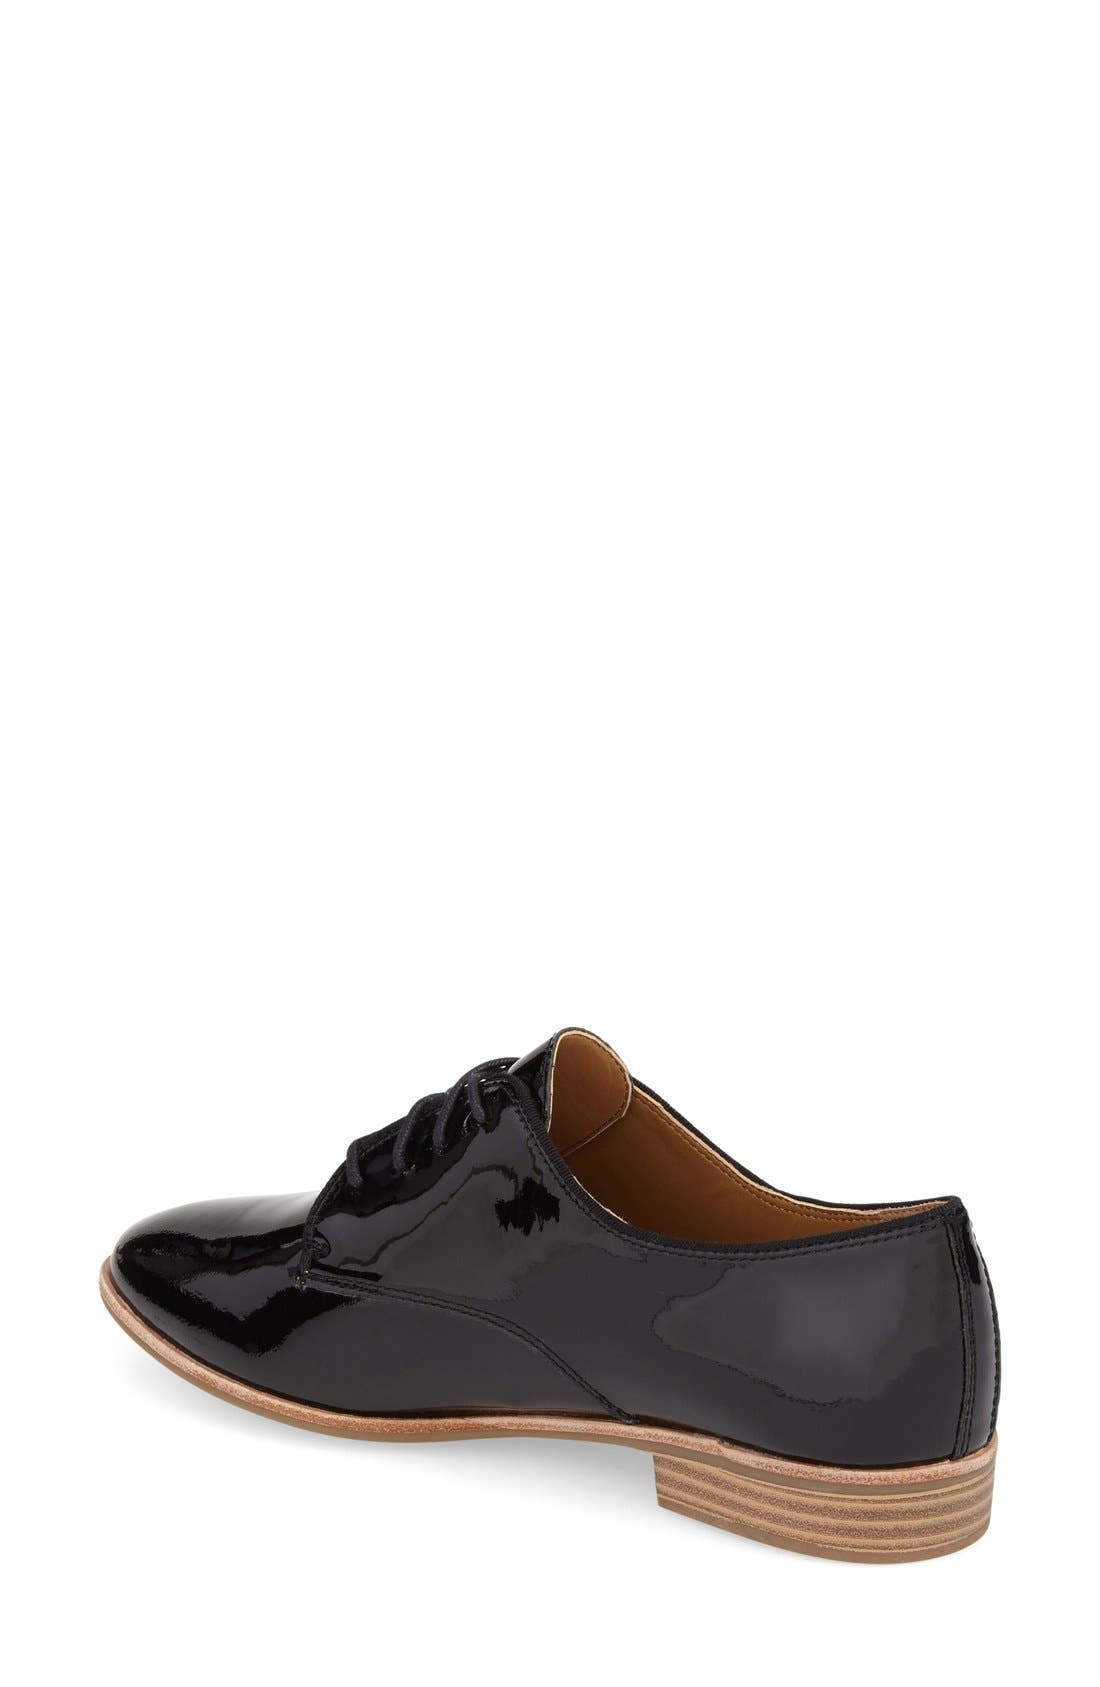 G.H. BASS & CO.,                             'Ella' Leather Oxford,                             Alternate thumbnail 2, color,                             001